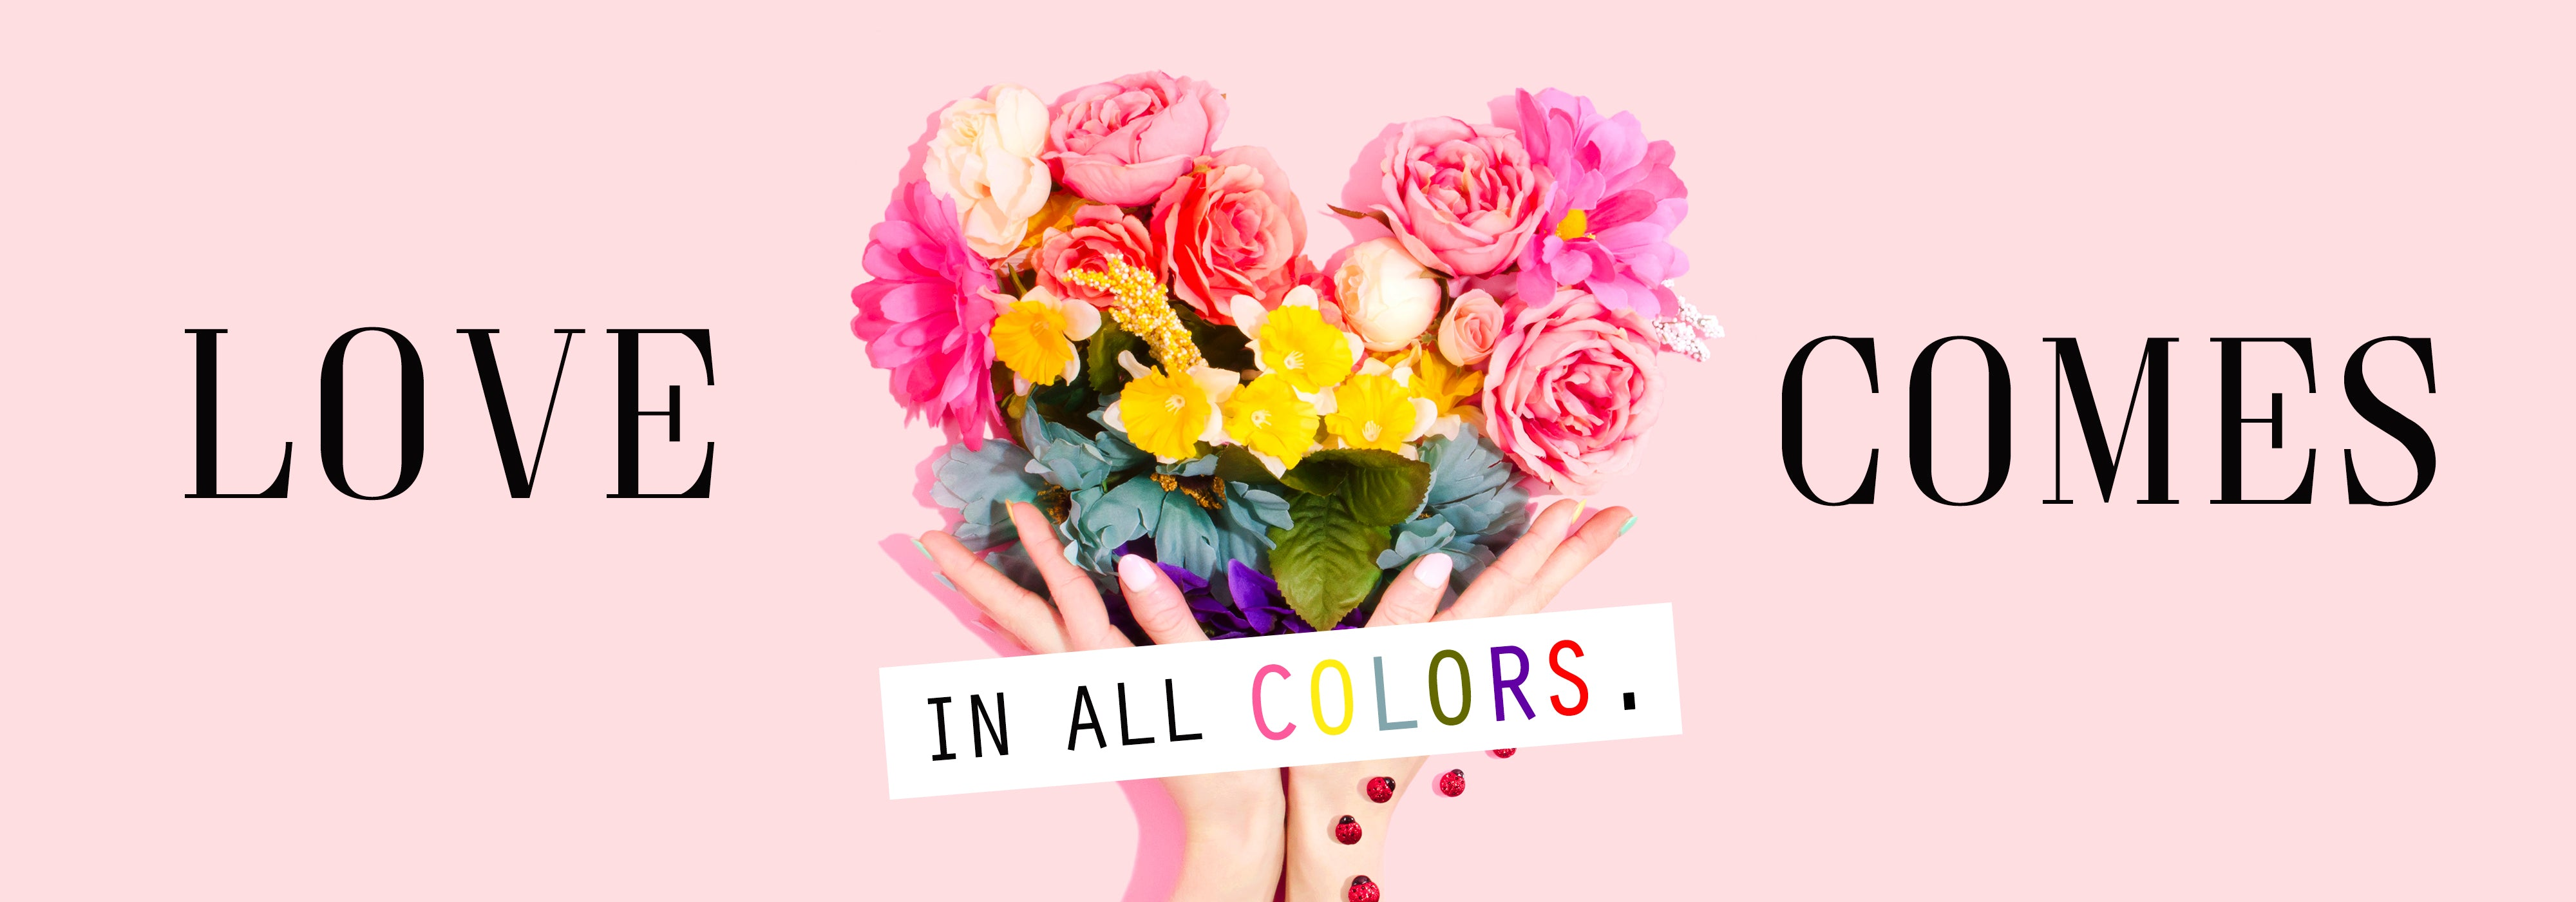 L'amour Makeup store, love comes in all colors slogan